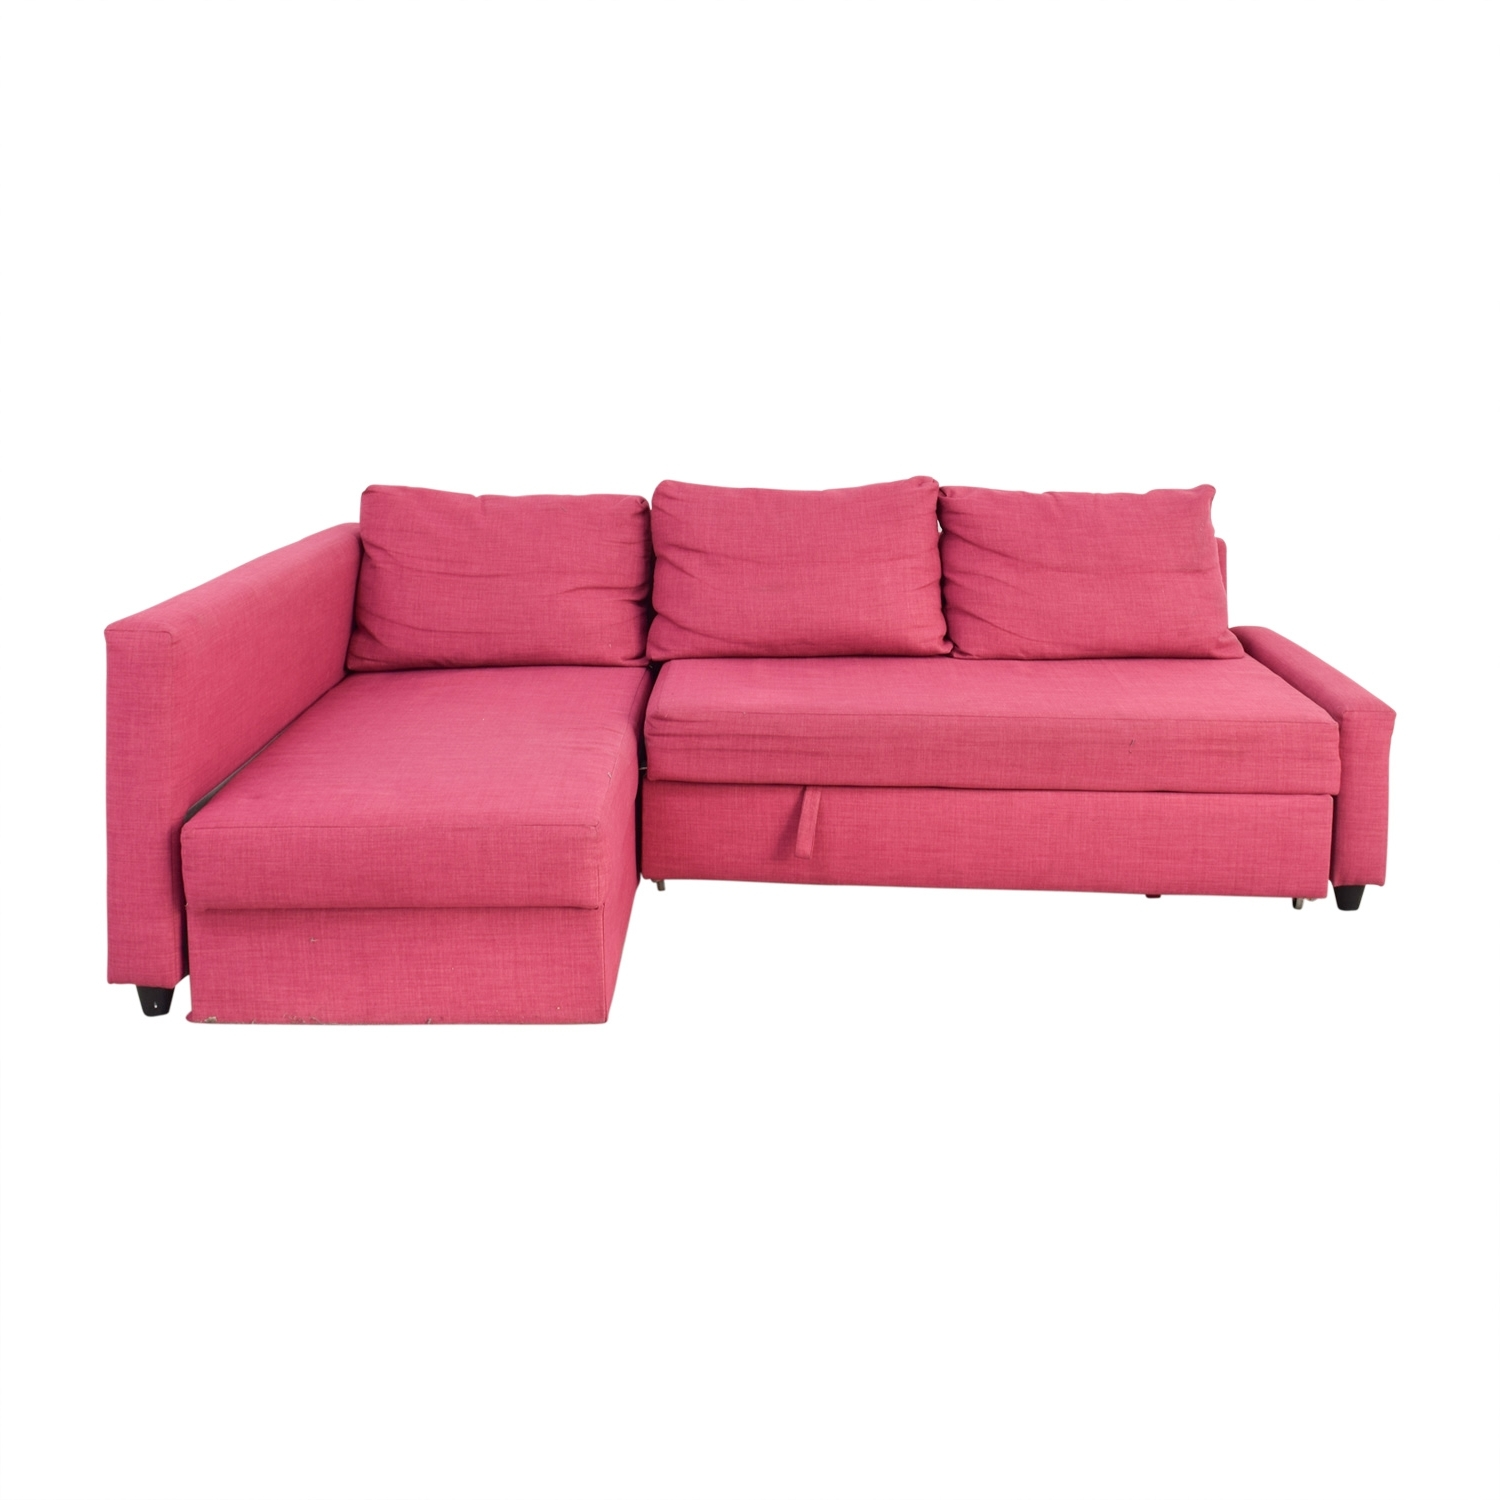 [%54% Off – Ikea Ikea Pink Kivik Chaise Sectional / Sofas Throughout Preferred Pink Chaises|Pink Chaises With Regard To Well Known 54% Off – Ikea Ikea Pink Kivik Chaise Sectional / Sofas|Newest Pink Chaises Regarding 54% Off – Ikea Ikea Pink Kivik Chaise Sectional / Sofas|Most Popular 54% Off – Ikea Ikea Pink Kivik Chaise Sectional / Sofas In Pink Chaises%] (View 1 of 15)